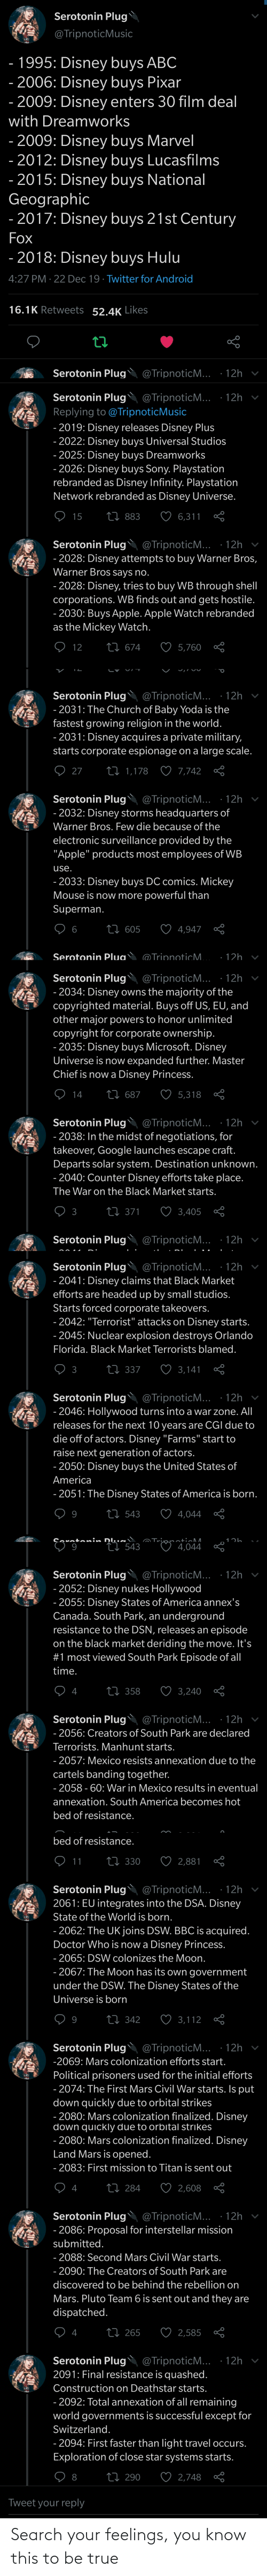 "sony playstation: Serotonin Plug  @TripnoticMusic  - 1995: Disney buys ABC  - 2006: Disney buys Pixar  - 2009: Disney enters 30 film deal  with Dreamworks  - 2009: Disney buys Marvel  - 2012: Disney buys Lucasfilms  - 2015: Disney buys National  Geographic  - 2017: Disney buys 21st Century  Fox  - 2018: Disney buys Hulu  4:27 PM · 22 Dec 19 · Twitter for Android  16.1K Retweets 52.4K Likes  Serotonin Plug  @TripnoticM... ·12h  Serotonin Plug @TripnoticM...  · 12h  Replying to @TripnoticMusic  - 2019: Disney releases Disney Plus  - 2022: Disney buys Universal Studios  - 2025: Disney buys Dreamworks  - 2026: Disney buys Sony. Playstation  rebranded as Disney Infinity. Playstation  Network rebranded as Disney Universe.  ♡ 6,311  O 15  27 883  Serotonin Plug  - 2028: Disney attempts to buy Warner Bros,  Warner Bros says no.  @TripnoticM... ·12h v  - 2028: Disney, tries to buy WB through shel  corporations. WB finds out and gets hostile.  - 2030: Buys Apple. Apple Watch rebranded  as the Mickey Watch.  O 12  27 674  5,760  Serotonin Plug  - 2031: The Church of Baby Yoda is the  fastest growing religion in the world.  - 2031: Disney acquires a private military,  starts corporate espionage ona large scale.  @TripnoticM... ·12h  ♡ 7,742 8  ♡ 27  27 1,178  Serotonin Plug @TripnoticM... · 12h v  - 2032: Disney storms headquarters of  Warner Bros. Few die because of the  electronic surveillance provided by the  ""Apple"" products most employees of WB  use.  - 2033: Disney buys DC comics. Mickey  Mouse is now more powerful than  Superman.  27 605  6  4,947  @TripnoticM.. · 12h  Serotonin Plua`  Serotonin Plug'  @TripnoticM... · 12h v  - 2034: Disney owns the majority of the  copyrighted material. Buys off US, EU, and  other major powers to honor unlimited  copyright for corporate ownership.  - 2035: Disney buys Microsoft. Disney  Universe is now expanded further. Master  Chief is now a Disney Princess.  ♡ 14  27 687  5,318  Serotonin Plug  @TripnoticM...  - 2038: In the midst of negotiations, for  takeover, Google launches escape craft.  Departs solar system. Destination unknown.  - 2040: Counter Disney efforts take place.  12h  The War on the Black Market starts.  ♡ 3,405  27 371  3  Serotonin Plug  @TripnoticM... ·12h v  Serotonin Plug  @TripnoticM... · 12h  - 2041: Disney claims that Black Market  efforts are headed up by small studios.  Starts forced corporate takeovers.  - 2042: ""Terrorist"" attacks on Disney starts.  - 2045: Nuclear explosion destroys Orlando  Florida. Black Market Terrorists blamed.  O з  ♡ 3,141  27 337  Serotonin Plug @TripnoticM... · 12h v  - 2046: Hollywood turns into a war zone. All  releases for the next 10 years are CGI due to  die off of actors. Disney ""Farms"" start to  raise next generation of actors.  - 2050: Disney buys the United States of  America  - 2051: The Disney States of America is born.  ♡ 4,044  27 543  gratanin Dl.  inticM  43**♡ 4,044  Serotonin Plug @TripnoticM... · 12h  - 2052: Disney nukes Hollywood  - 2055: Disney States of America annex's  Canada. South Park, an underground  resistance to the DSN, releases an episode  on the black market deriding the move. It's  #1 most viewed South Park Episode of all  time.  O 4  ♡ 3,240  27 358  Serotonin Plug @TripnoticM... · 12h  - 2056: Creators of South Park are declared  Terrorists. Manhunt starts.  - 2057: Mexico resists annexation due to the  cartels banding together.  - 2058 - 60: War in Mexico results in eventual  annexation. South America becomes hot  bed of resistance.  bed of resistance.  ♡ 11  27 330  2,881  · 12h  Serotonin Plug @TripnoticM...  2061: EU integrates into the DSA. Disney  State of the World is born.  - 2062: The UK joins DSW. BBC is acquired.  Doctor Who is now a Disney Princess.  - 2065: DSW colonizes the Moon.  - 2067: The Moon has its own government  under the DSW. The Disney States of the  Universe is born  27 342  3,112  Serotonin Plug  -2069: Mars colonization efforts start.  @TripnoticM... · 12h v  Political prisoners used for the initial efforts  - 2074: The First Mars Civil War starts. Is put  down quickly due to orbital strikes  - 2080: Mars colonization finalized. Disney  down quickly due to orbital strikes  - 2080: Mars colonization finalized. Disney  Land Mars is opened.  - 2083: First mission to Titan is sent out  ♡ 2,608  27 284  4  @TripnoticM... · 12h v  - 2086: Proposal for interstellar mission  Serotonin Plug  submitted.  - 2088: Second Mars Civil War starts.  - 2090: The Creators of South Park are  discovered to be behind the rebellion on  Mars. Pluto Team 6 is sentout and they are  dispatched.  ♡ 4  ♡ 2,585  27 265  Serotonin Plug'  @TripnoticM... ·12h v  2091: Final resistance is quashed.  Construction on Deathstar starts.  - 2092: Total annexation of all remaining  world governments is successful except for  Switzerland.  - 2094: First faster than light travel occurs.  Exploration of close star systems starts.  ♡ 2,748  27 290  8  Tweet your reply Search your feelings, you know this to be true"